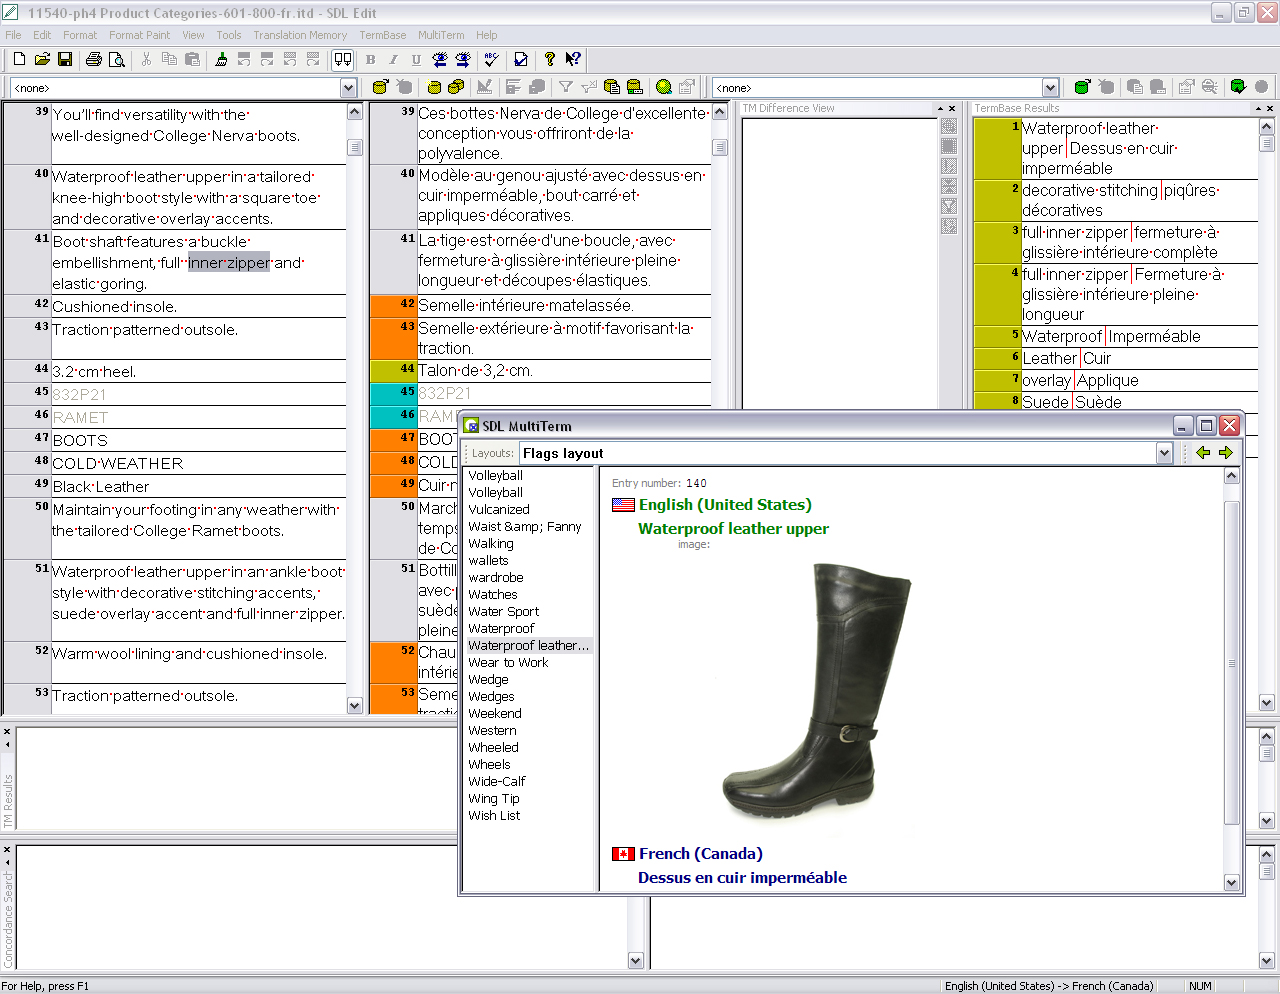 Screenshot of terminology management in Trados software for catalog localization of Naturalizer